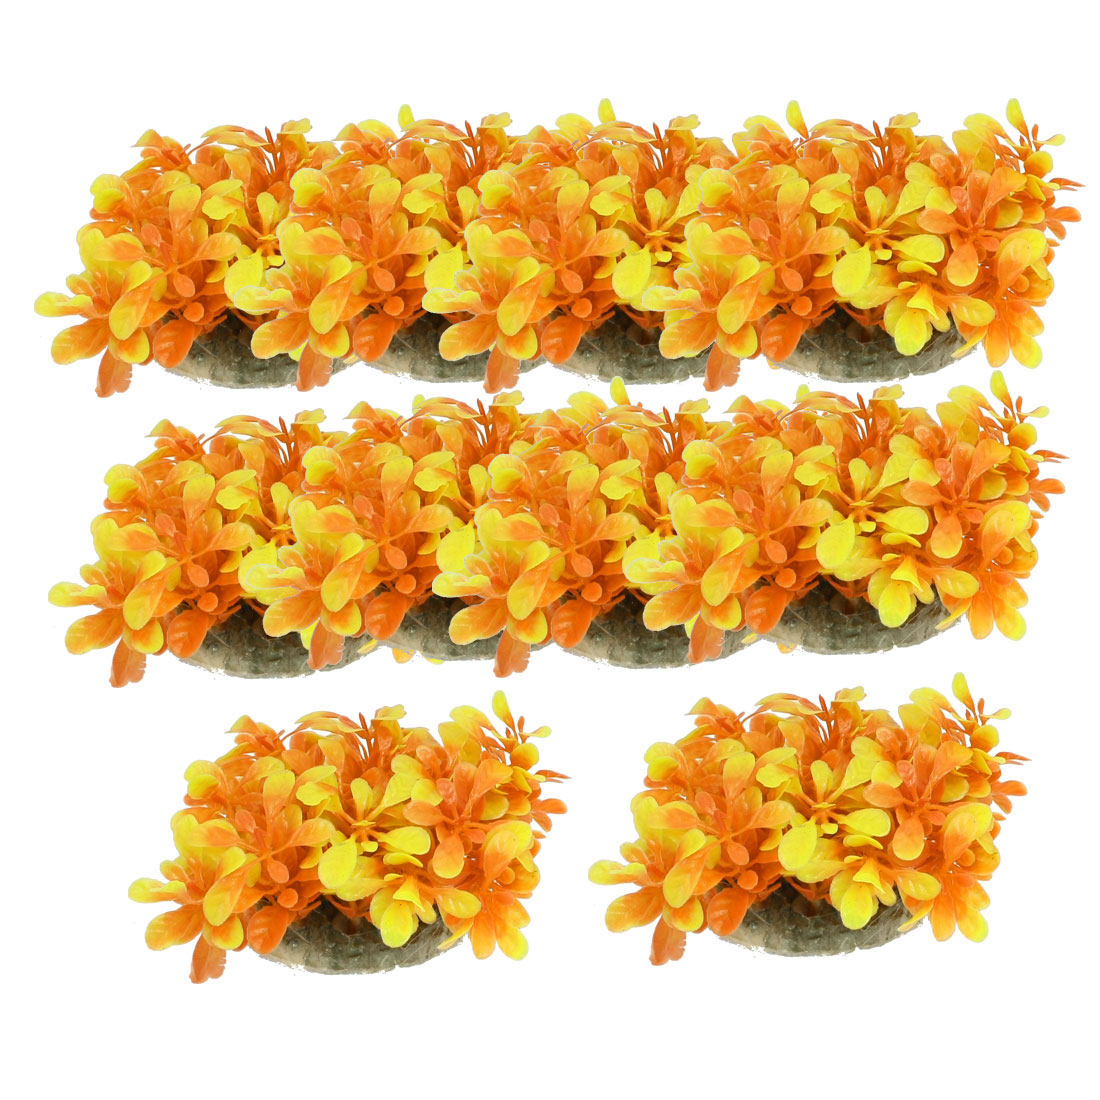 "10 Pcs Aquarium Tank Yellow Orange Plastic Plant Decor 2.4"" Height w Ceramic Base"